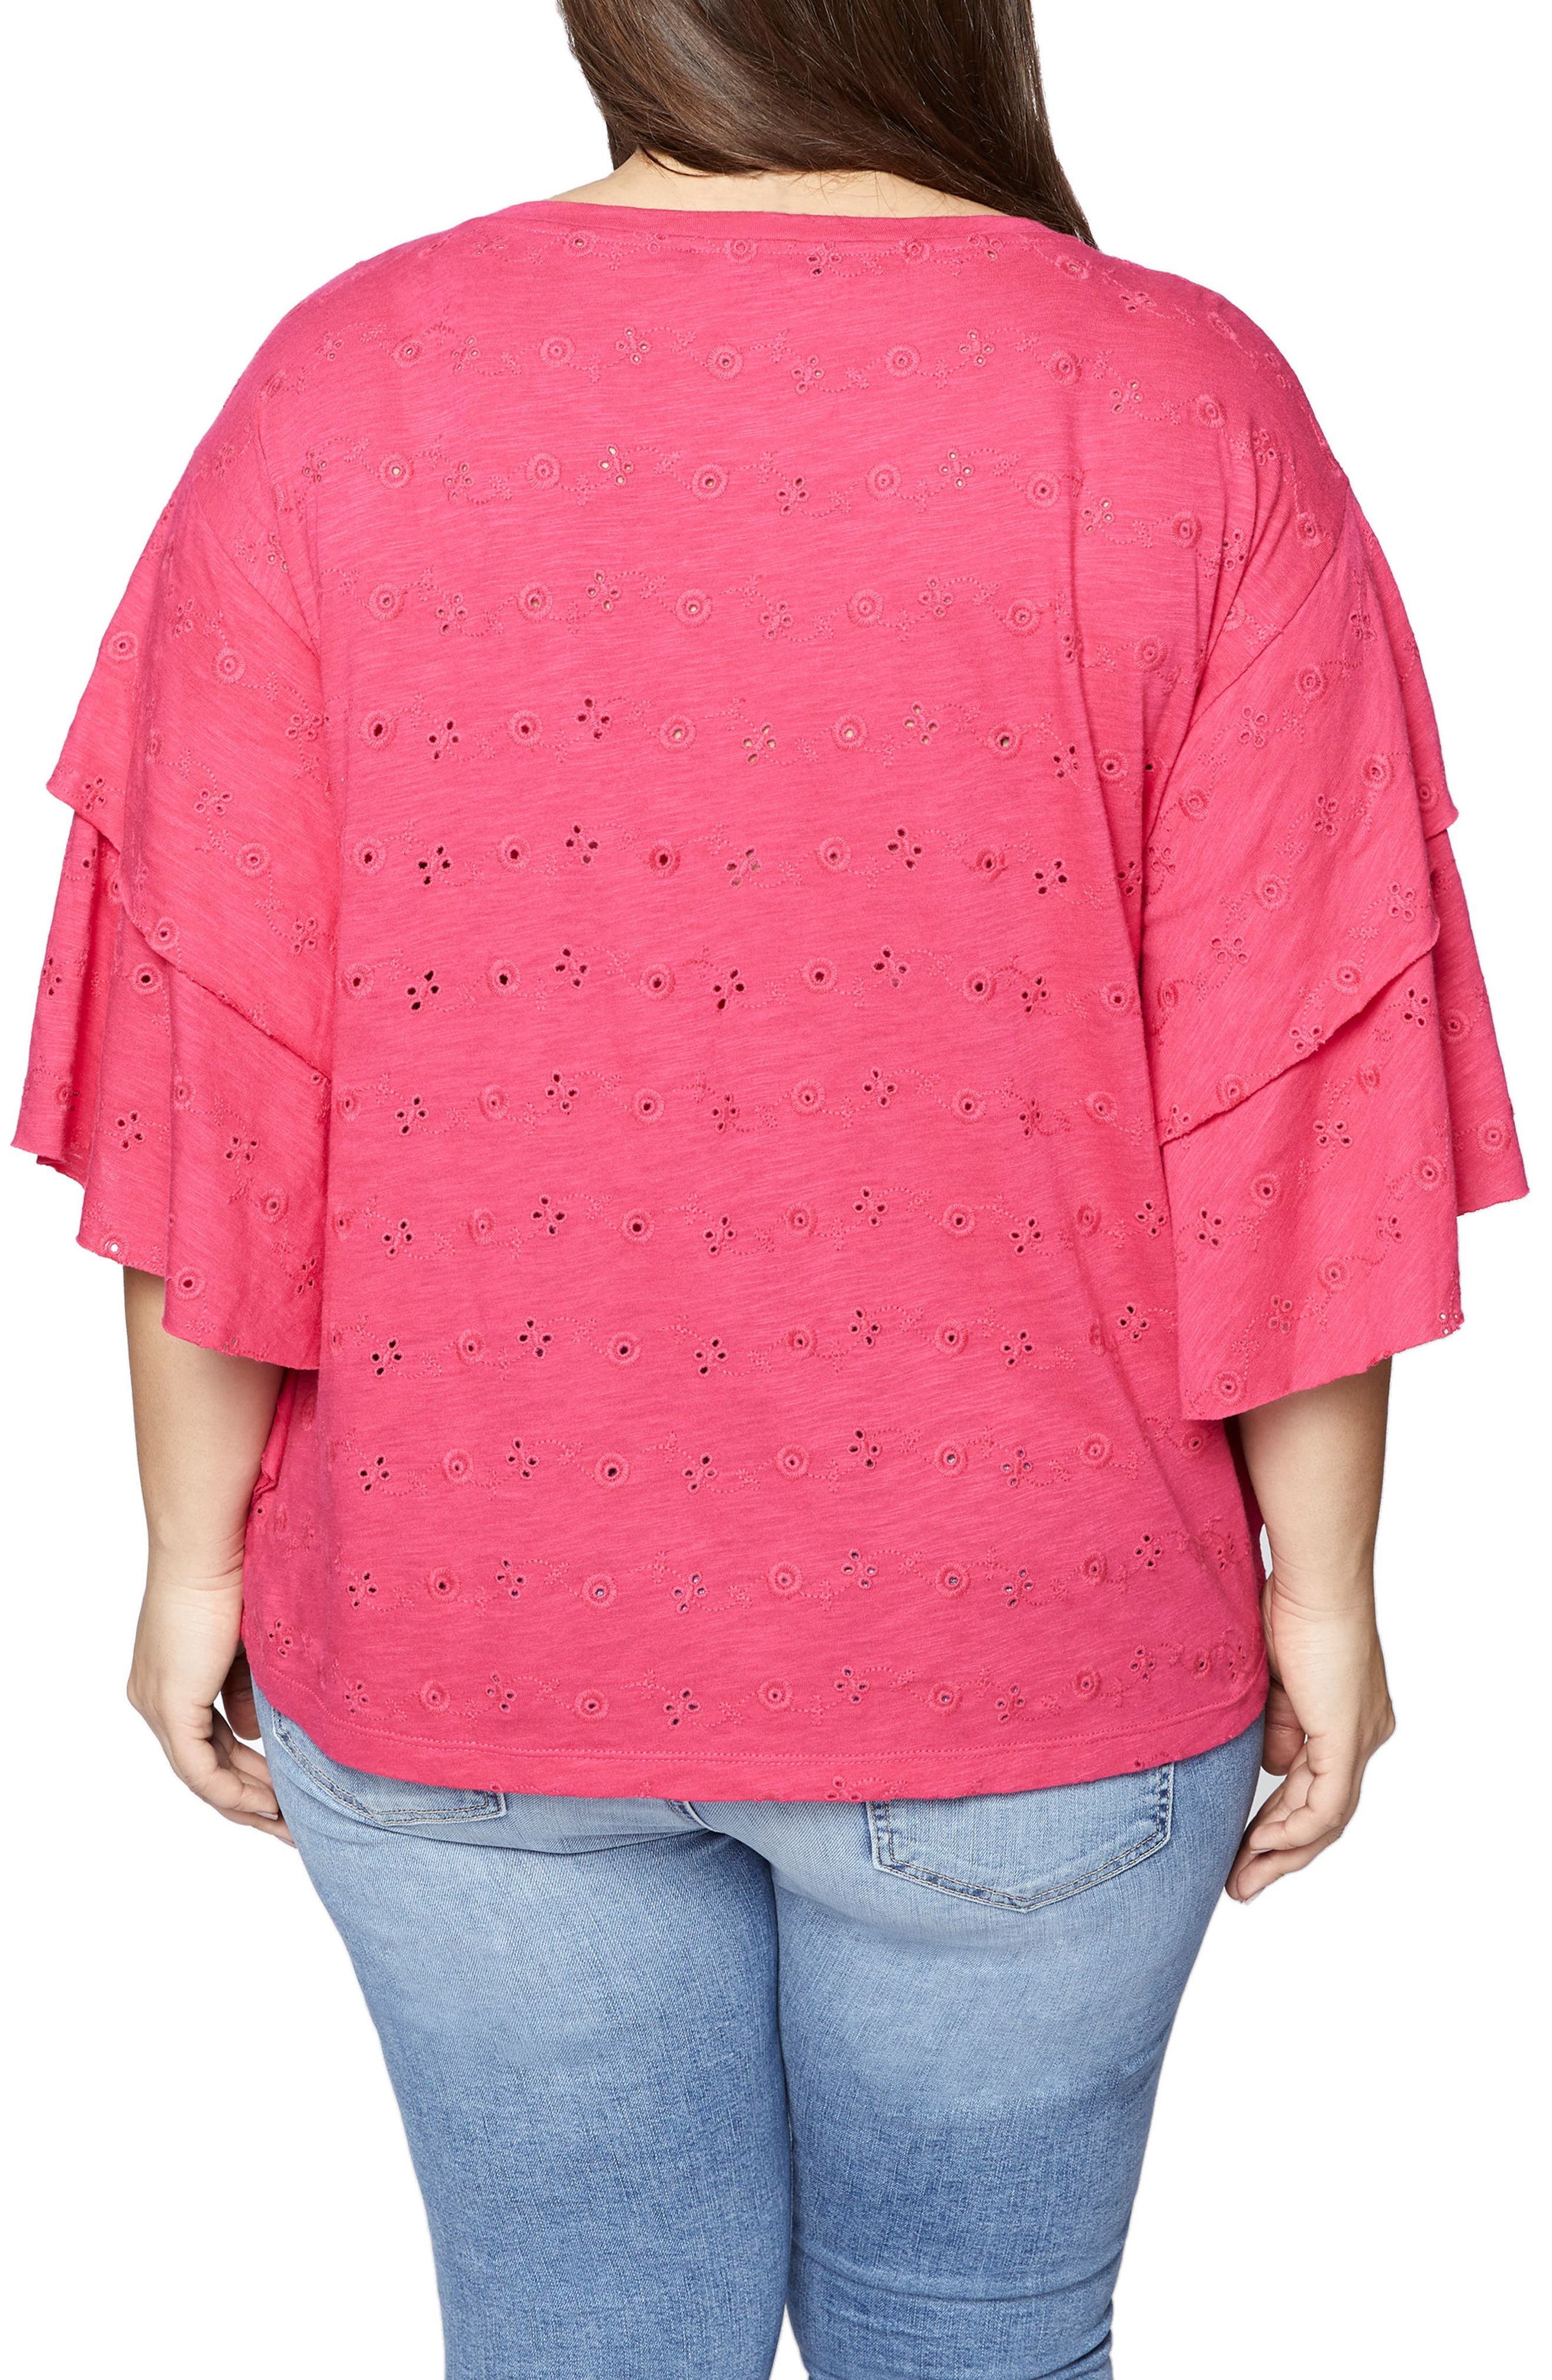 Elise Ruffled Eyelet Top,                             Alternate thumbnail 2, color,                             Camellia